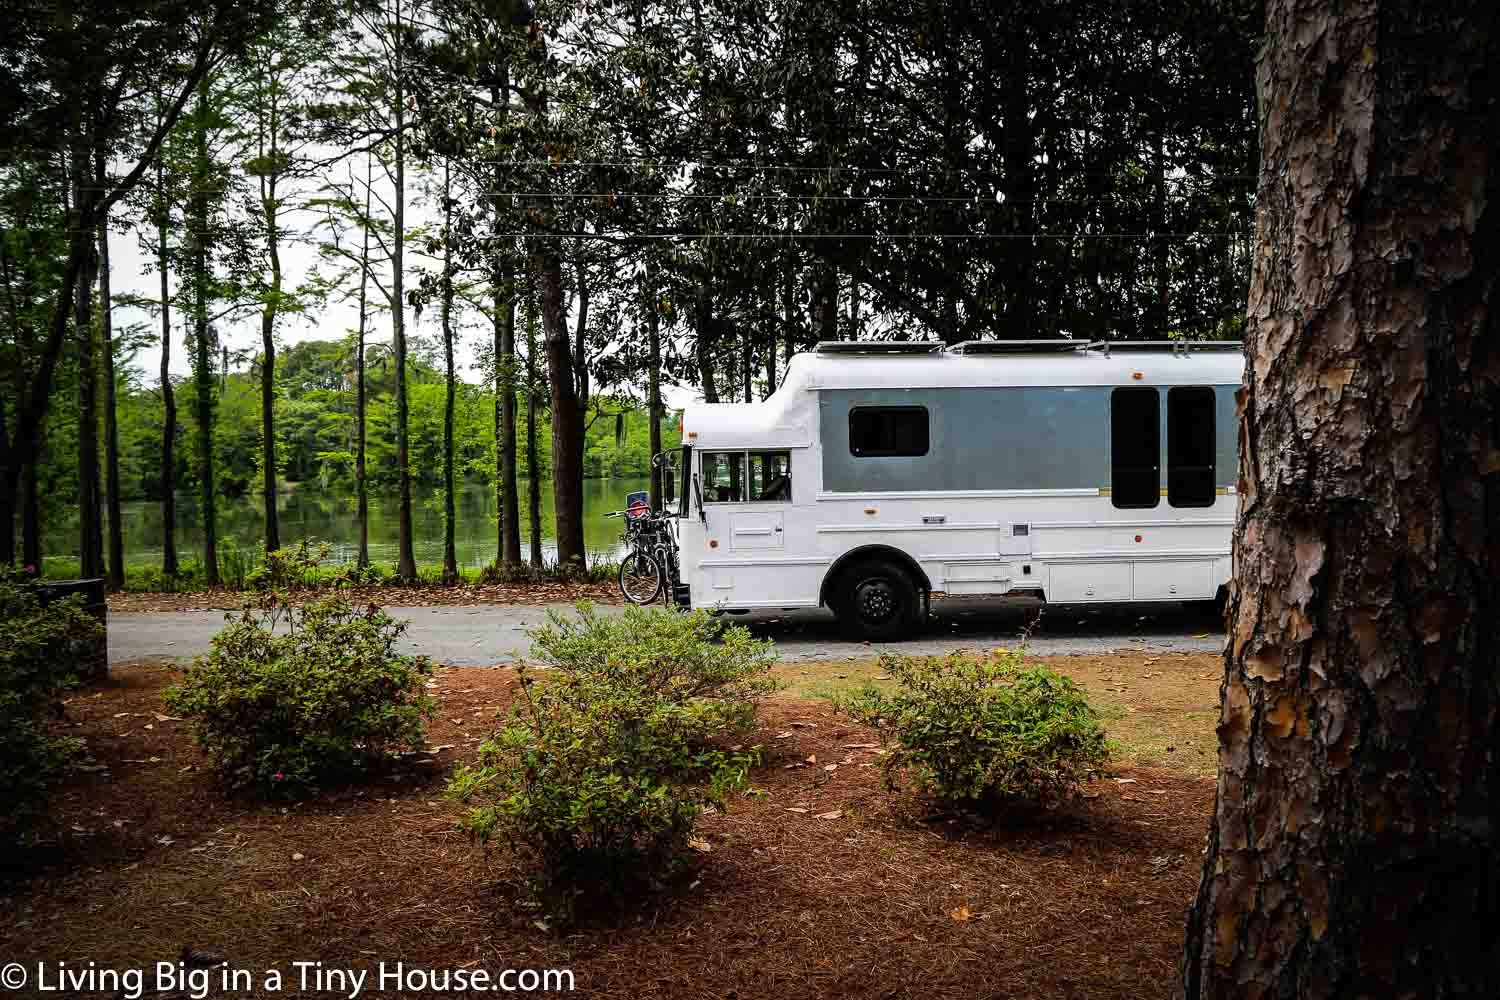 School Bus Converted To Incredible Off-Grid Home | Living Big In A ...